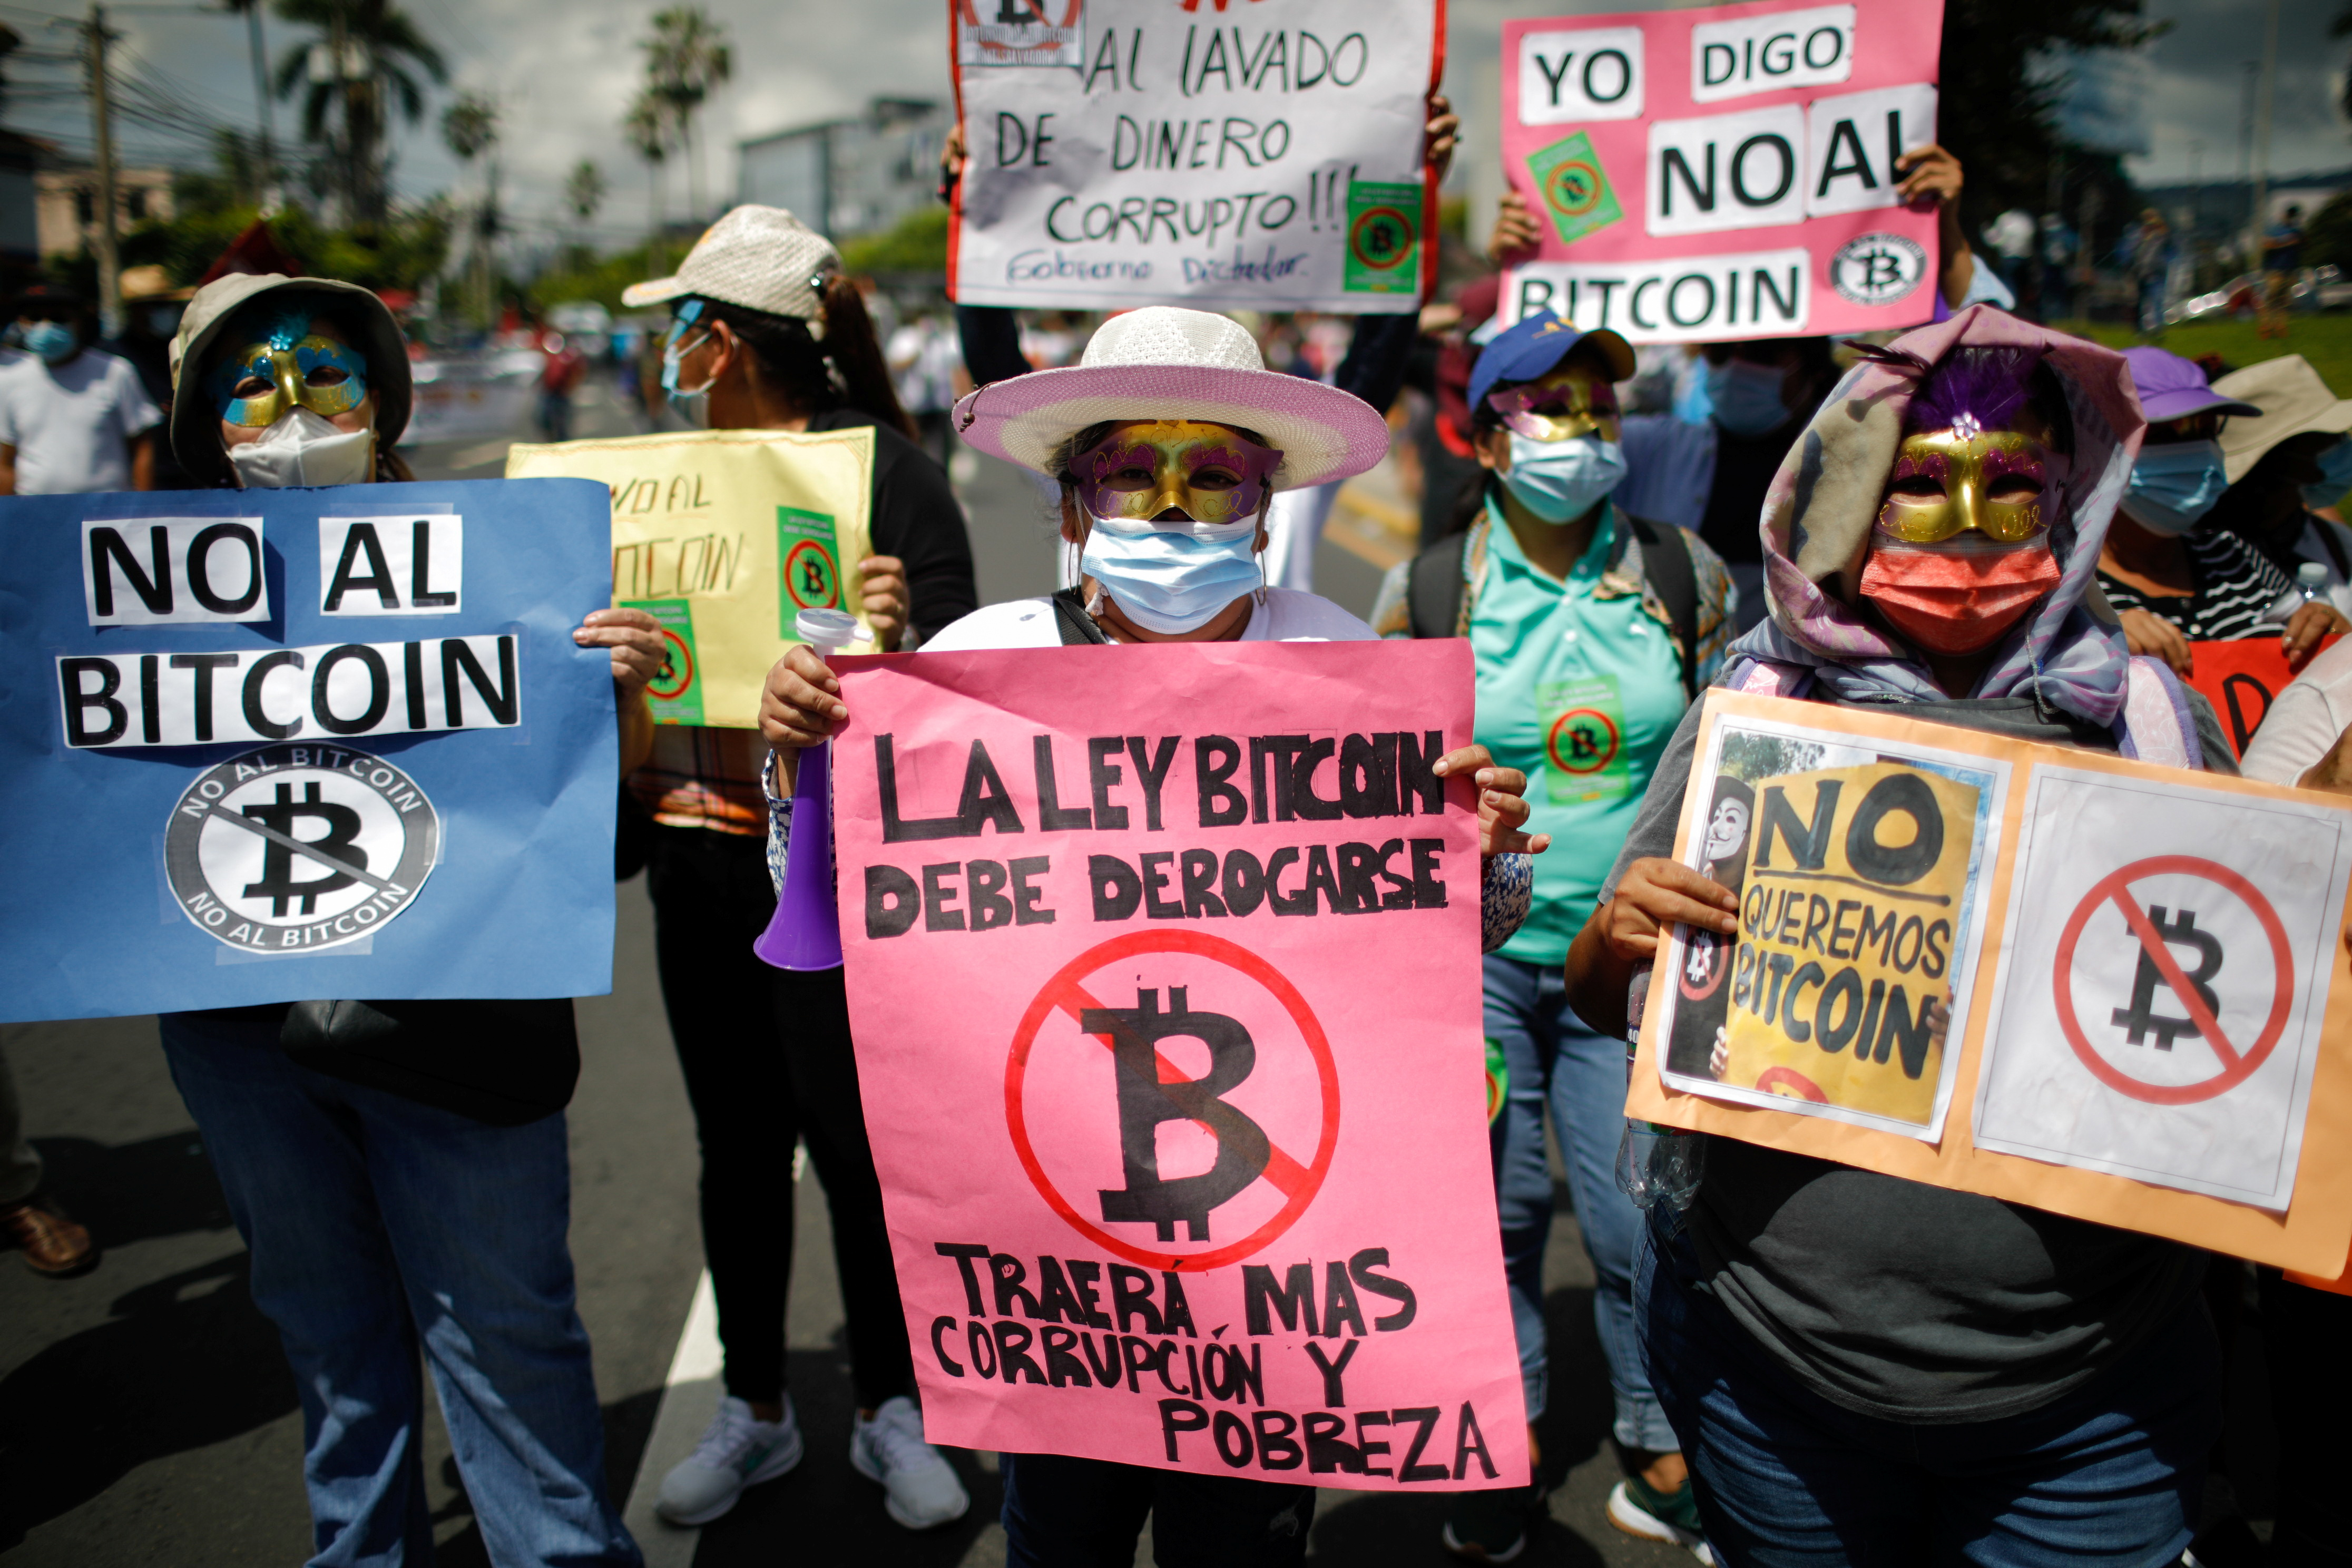 A person holds a sign that reads 'The Bitcoin bill must be repealed, it will bring more corruption and poverty', as people participate in a protest against the use of Bitcoin as legal tender, in San Salvador, El Salvador, September 7, 2021. REUTERS/Jose Cabezas